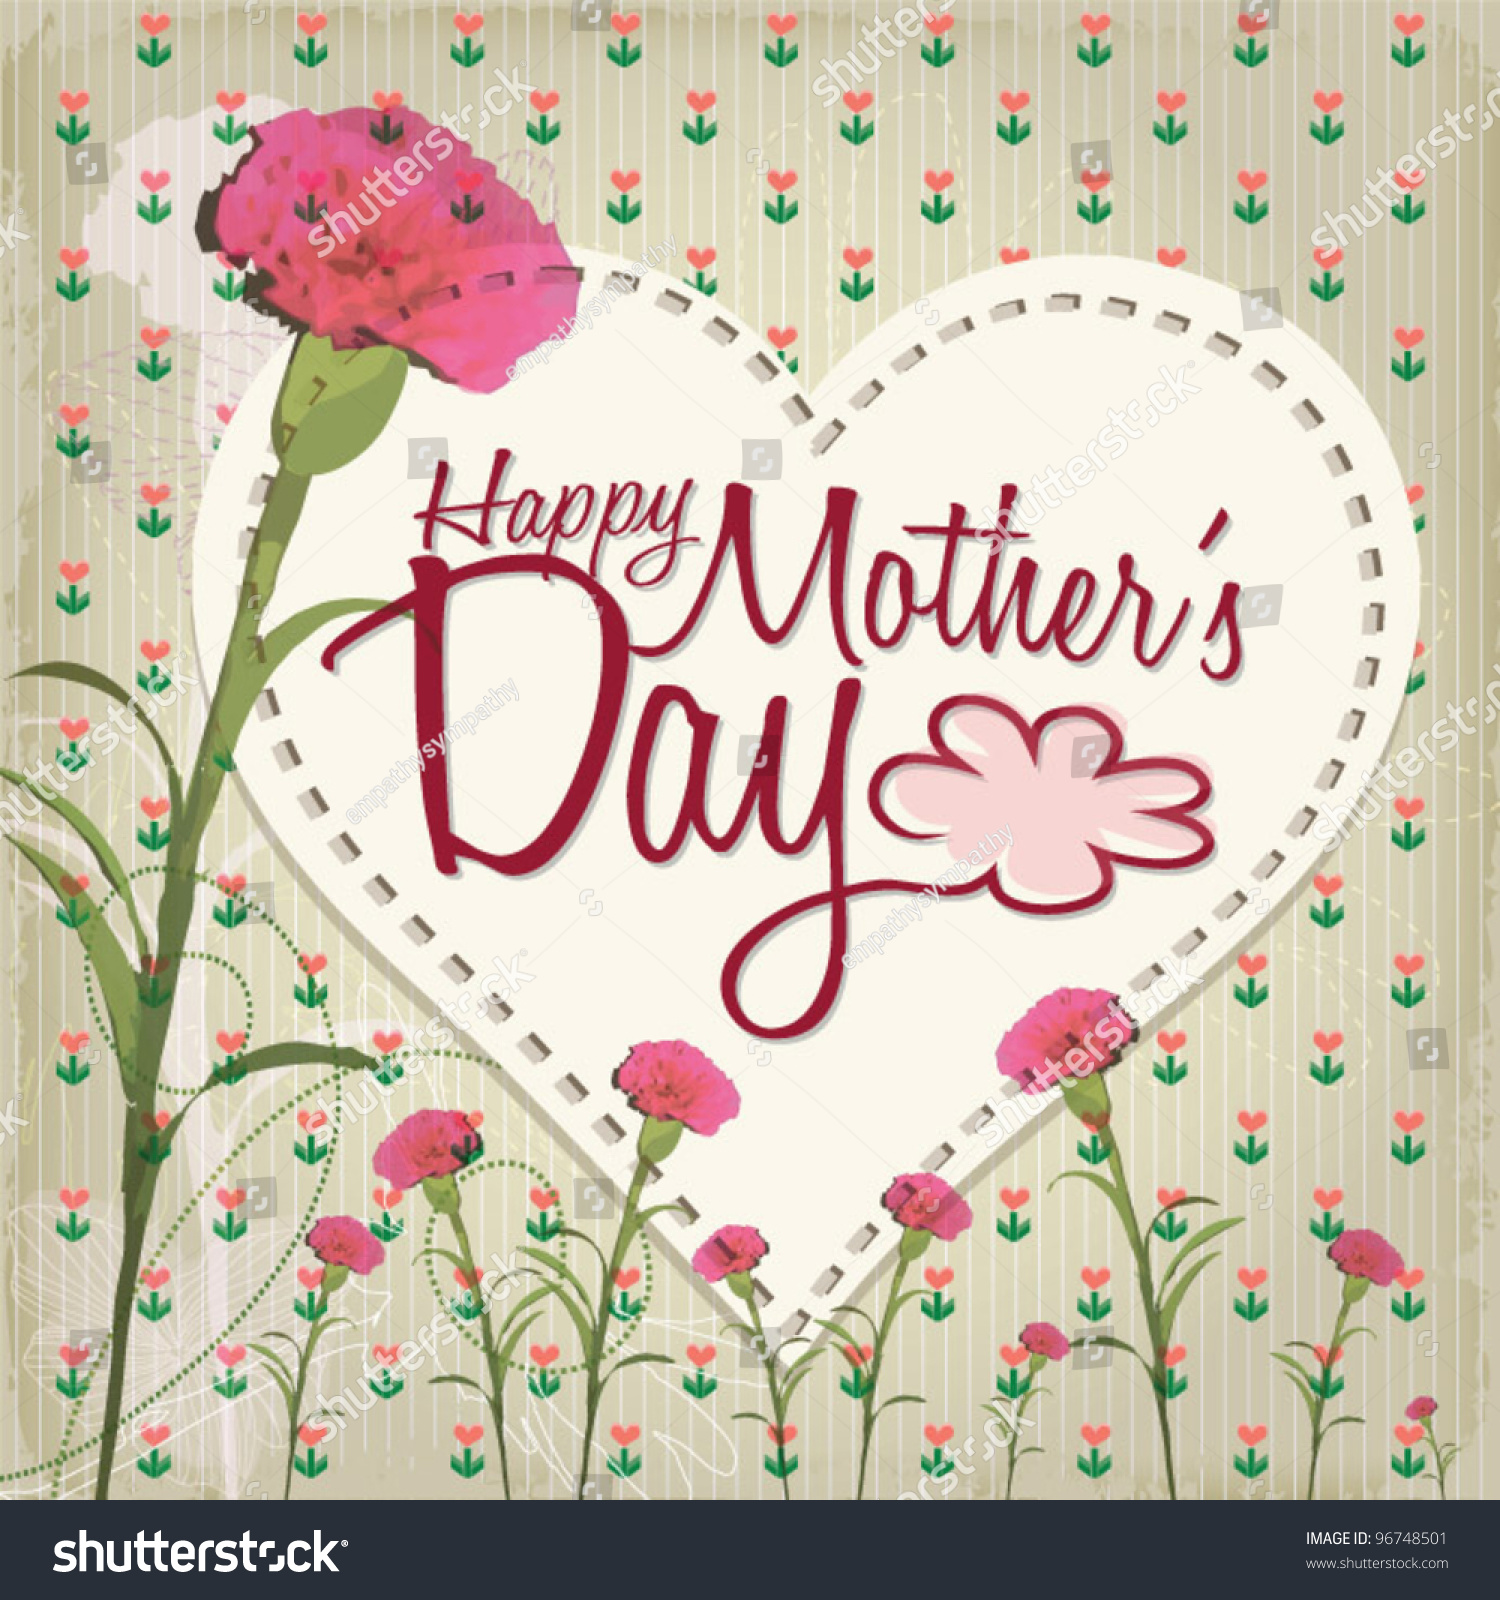 Happy mothers day lovely greeting card stock vector hd royalty free happy mothers day lovely greeting card m4hsunfo